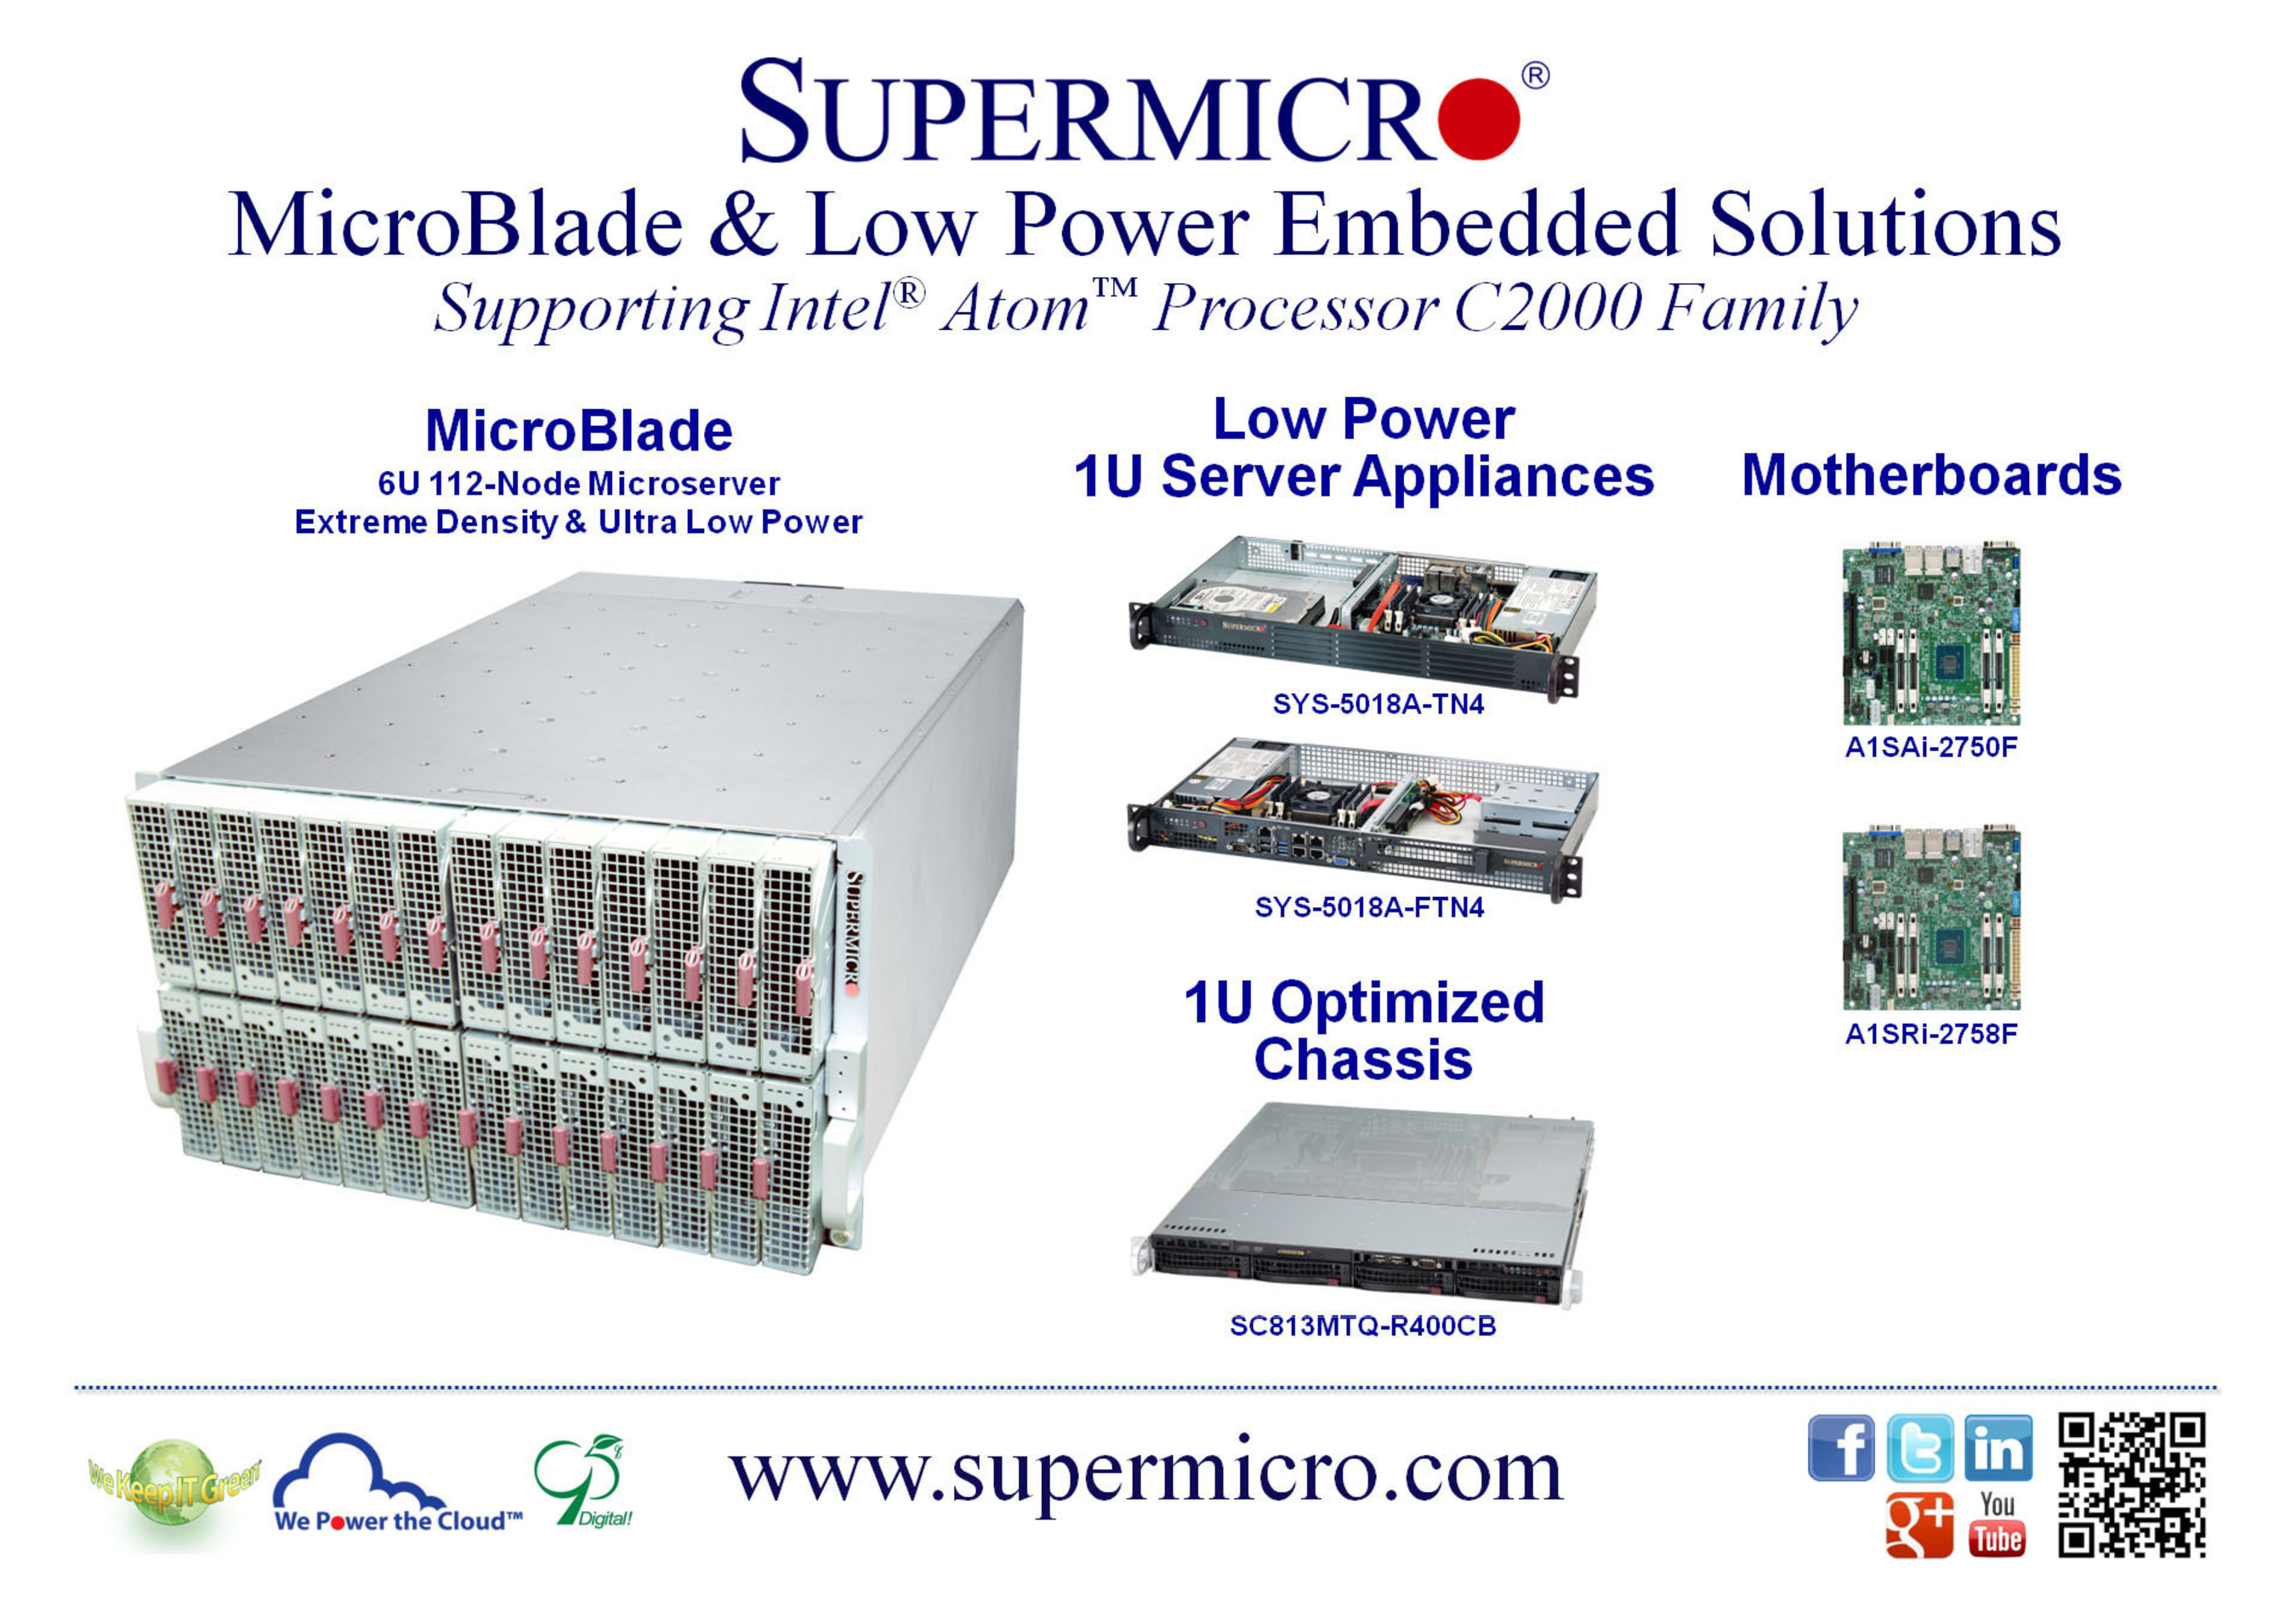 Supermicro(R) Debuts Extreme Density MicroBlade & Low Power Embedded Server Solutions.  (PRNewsFoto/Super Micro Computer, Inc.)